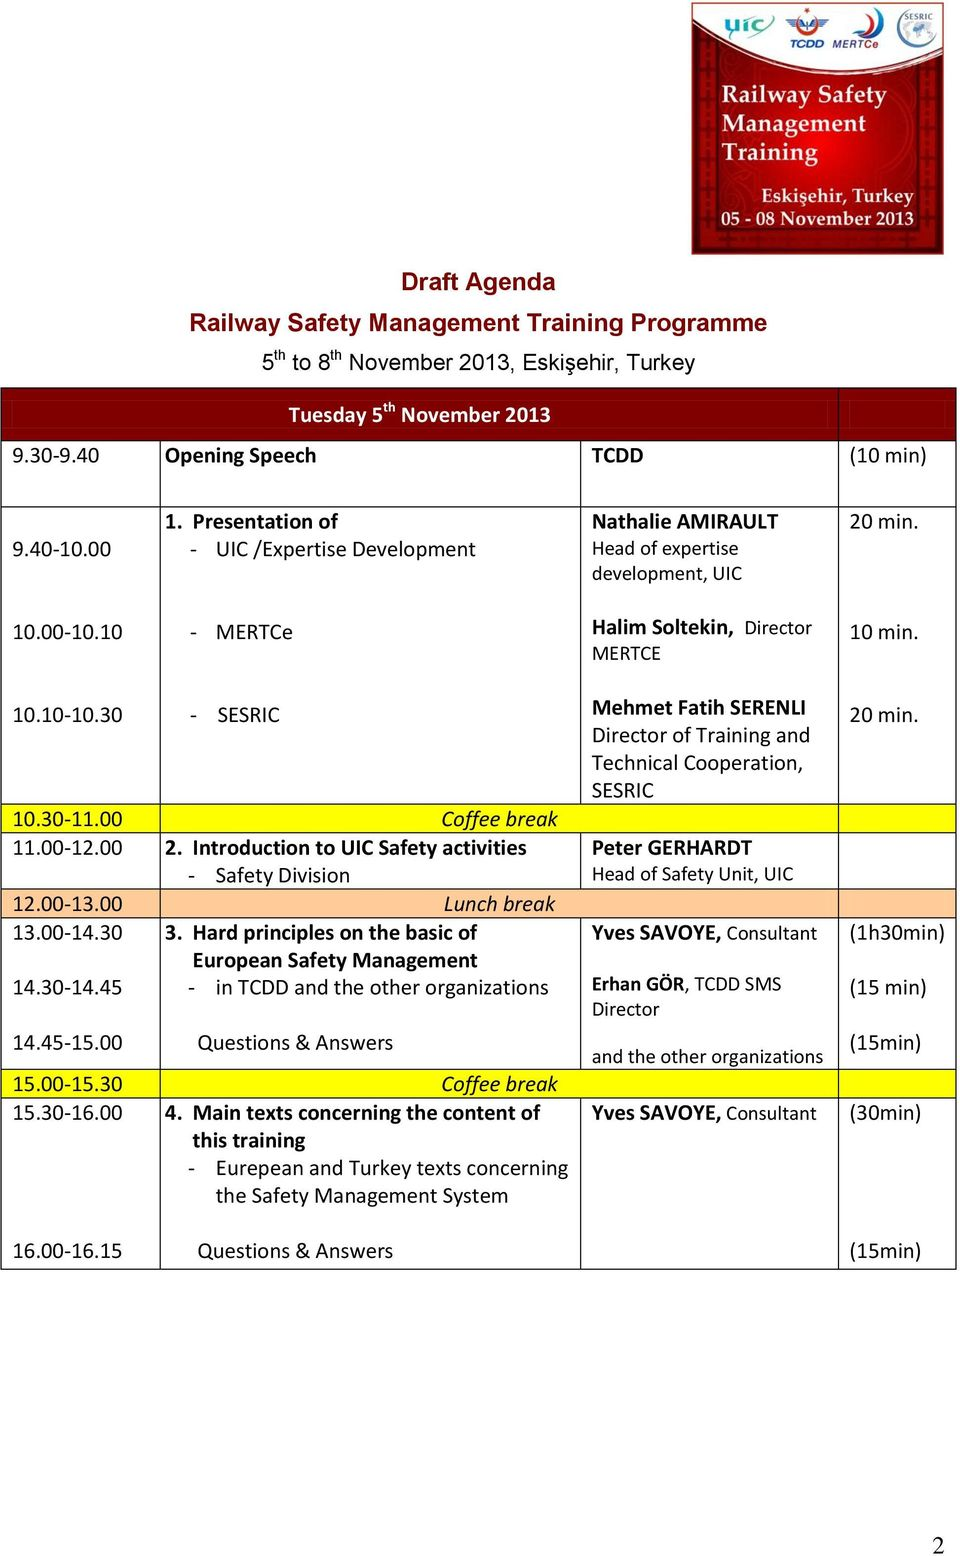 00 Coffee break 11.00-12.00 2. Introduction to UIC Safety activities - Safety Division 12.00-13.00 Lunch break 13.00-14.30 3. Hard principles on the basic of European Safety Management 14.30-14.